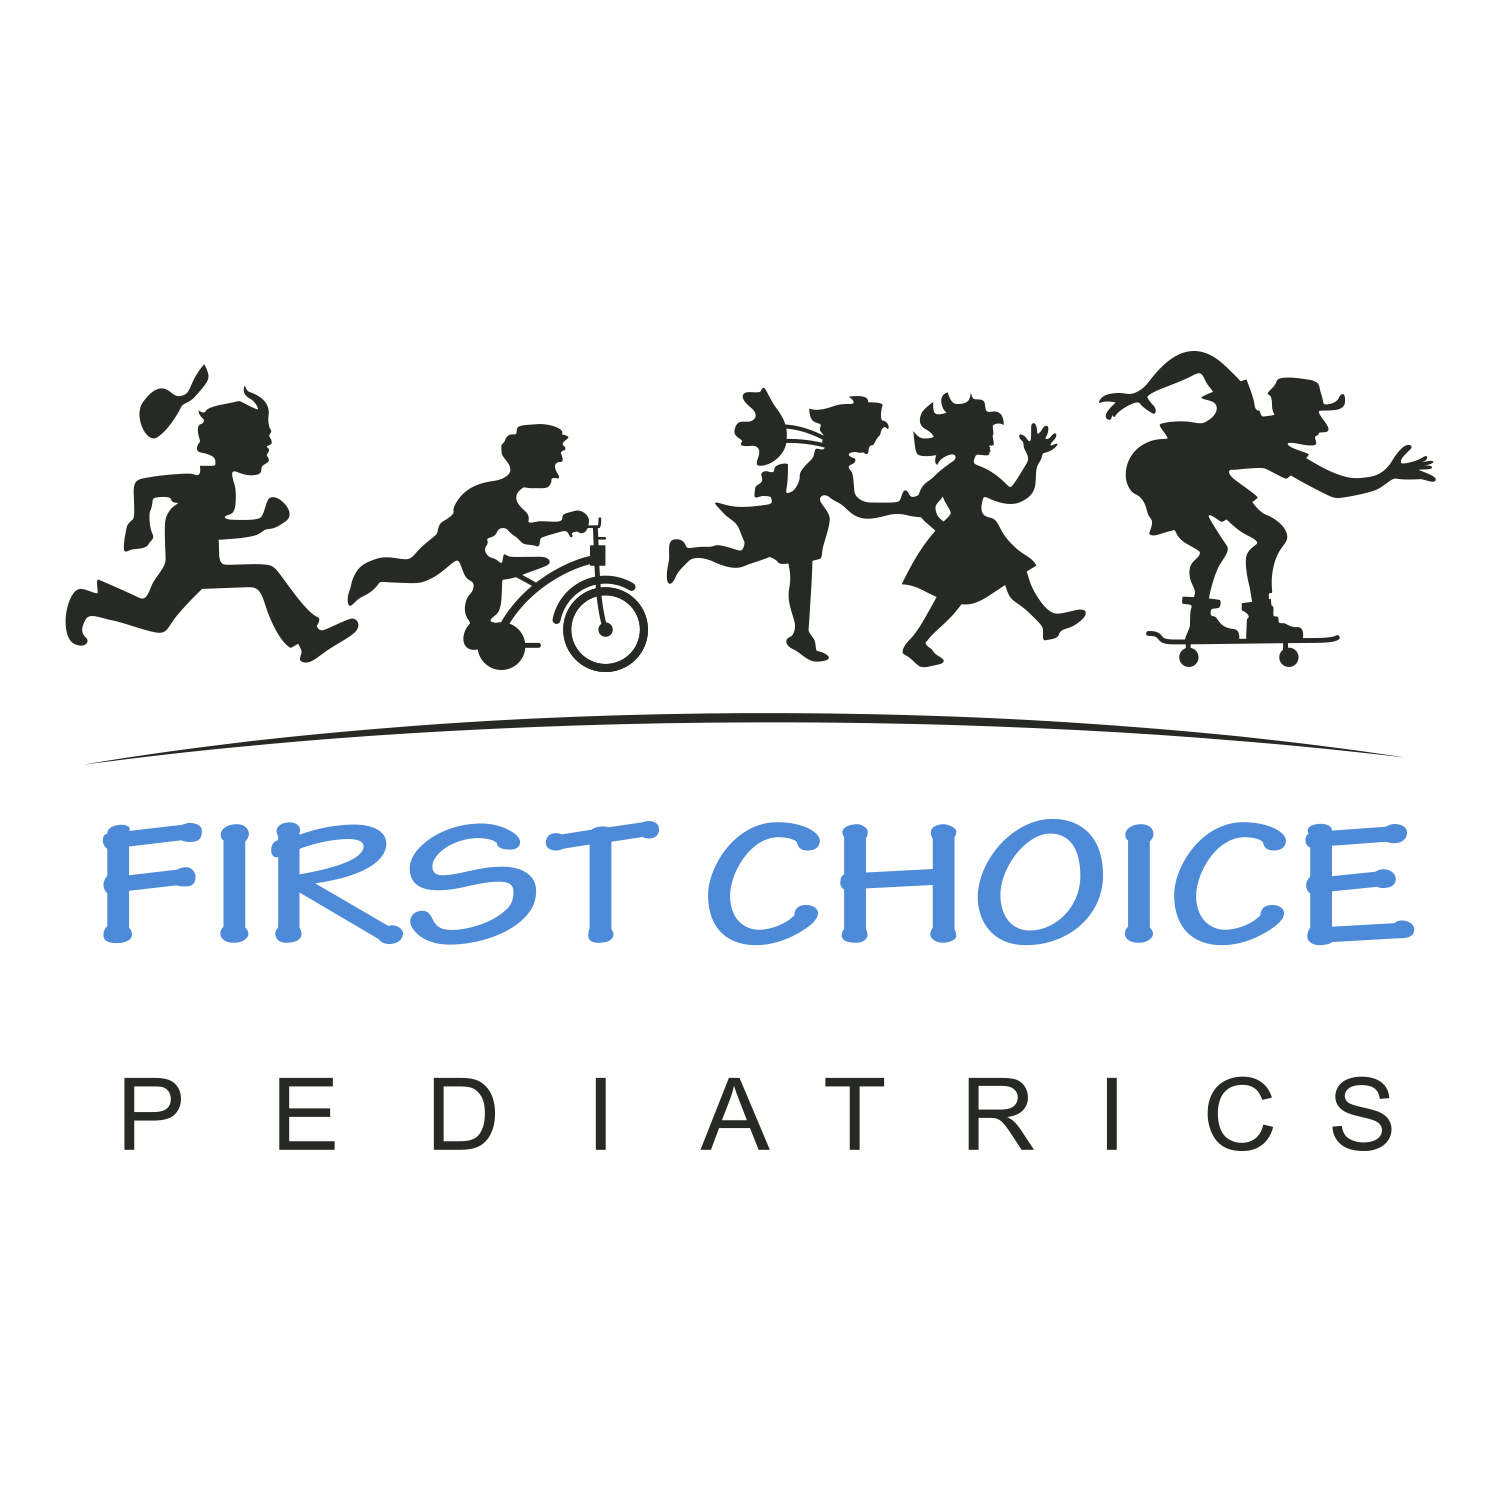 First Choice Pediatrics.jpg